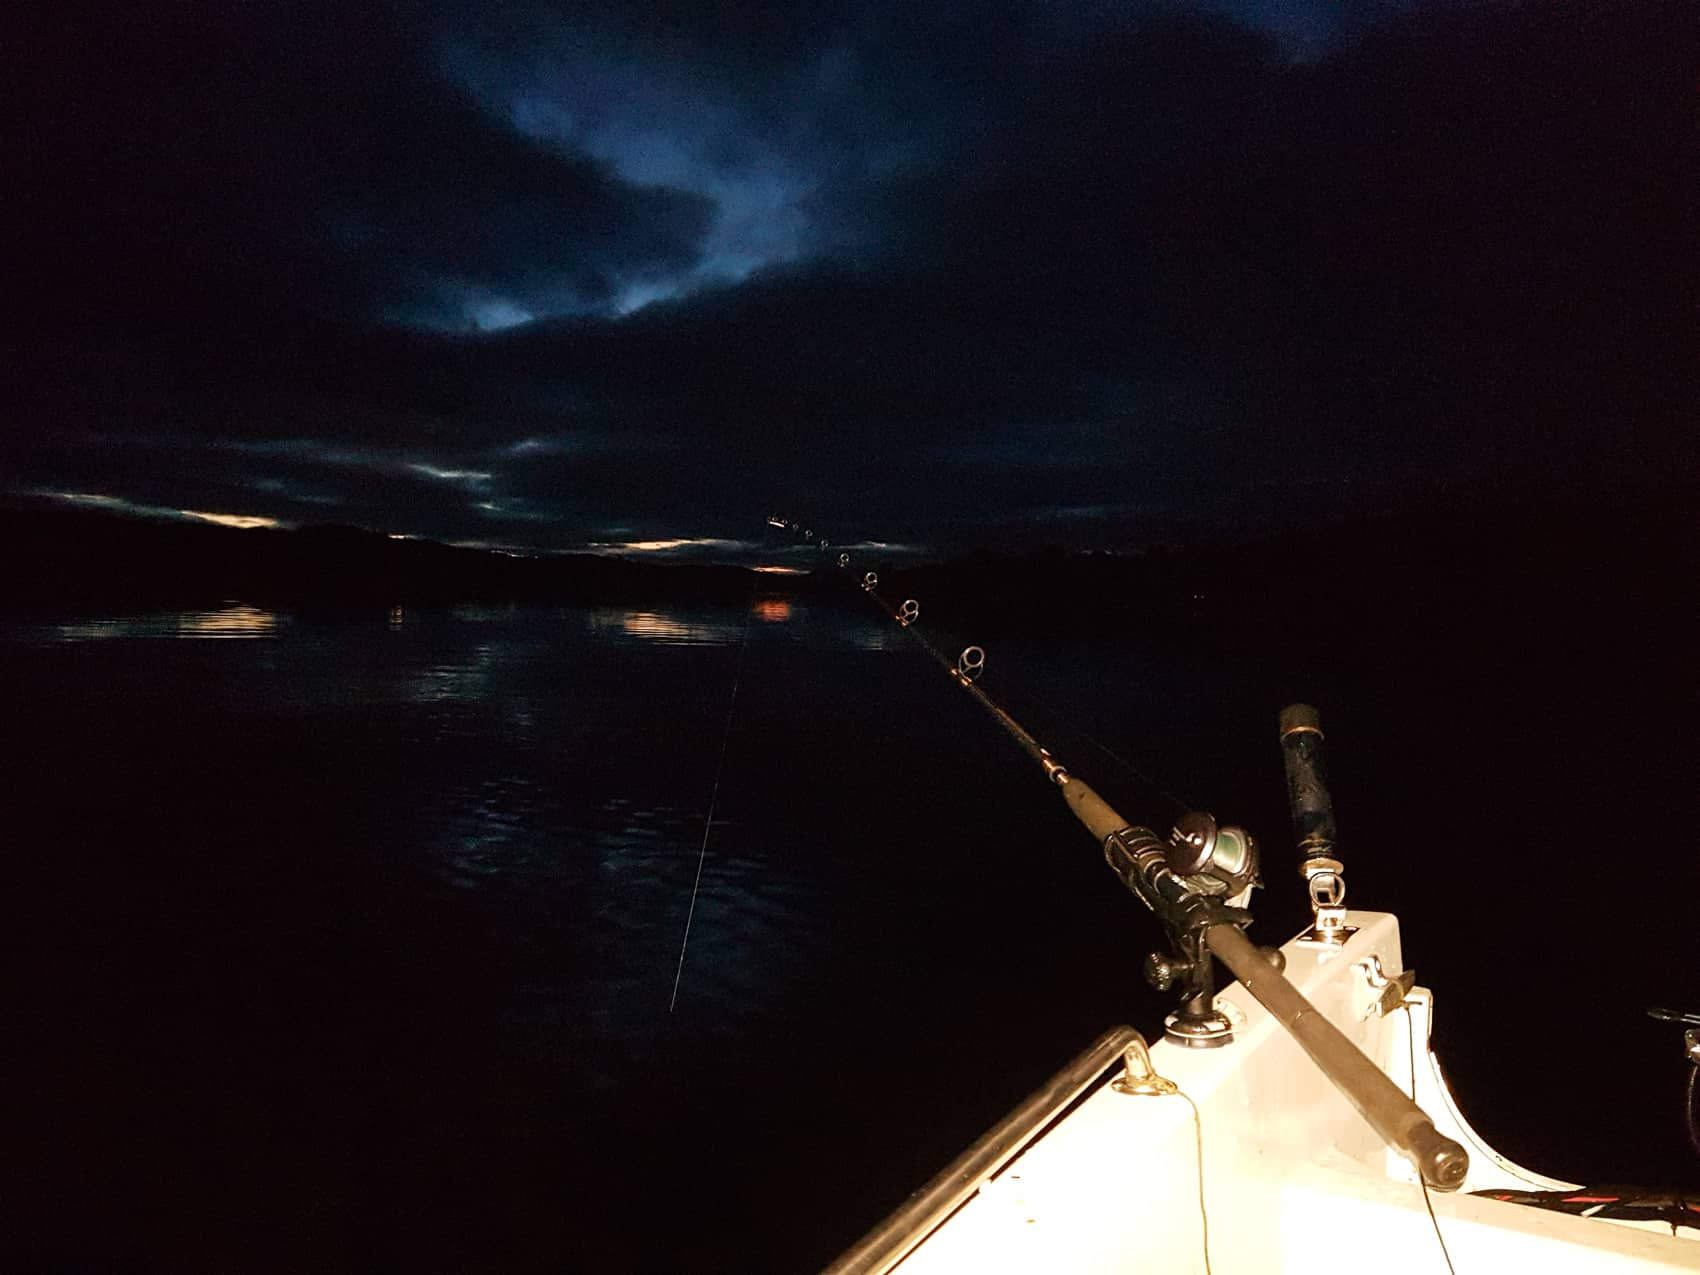 Afloat on Loch Etive on a mid-winter night